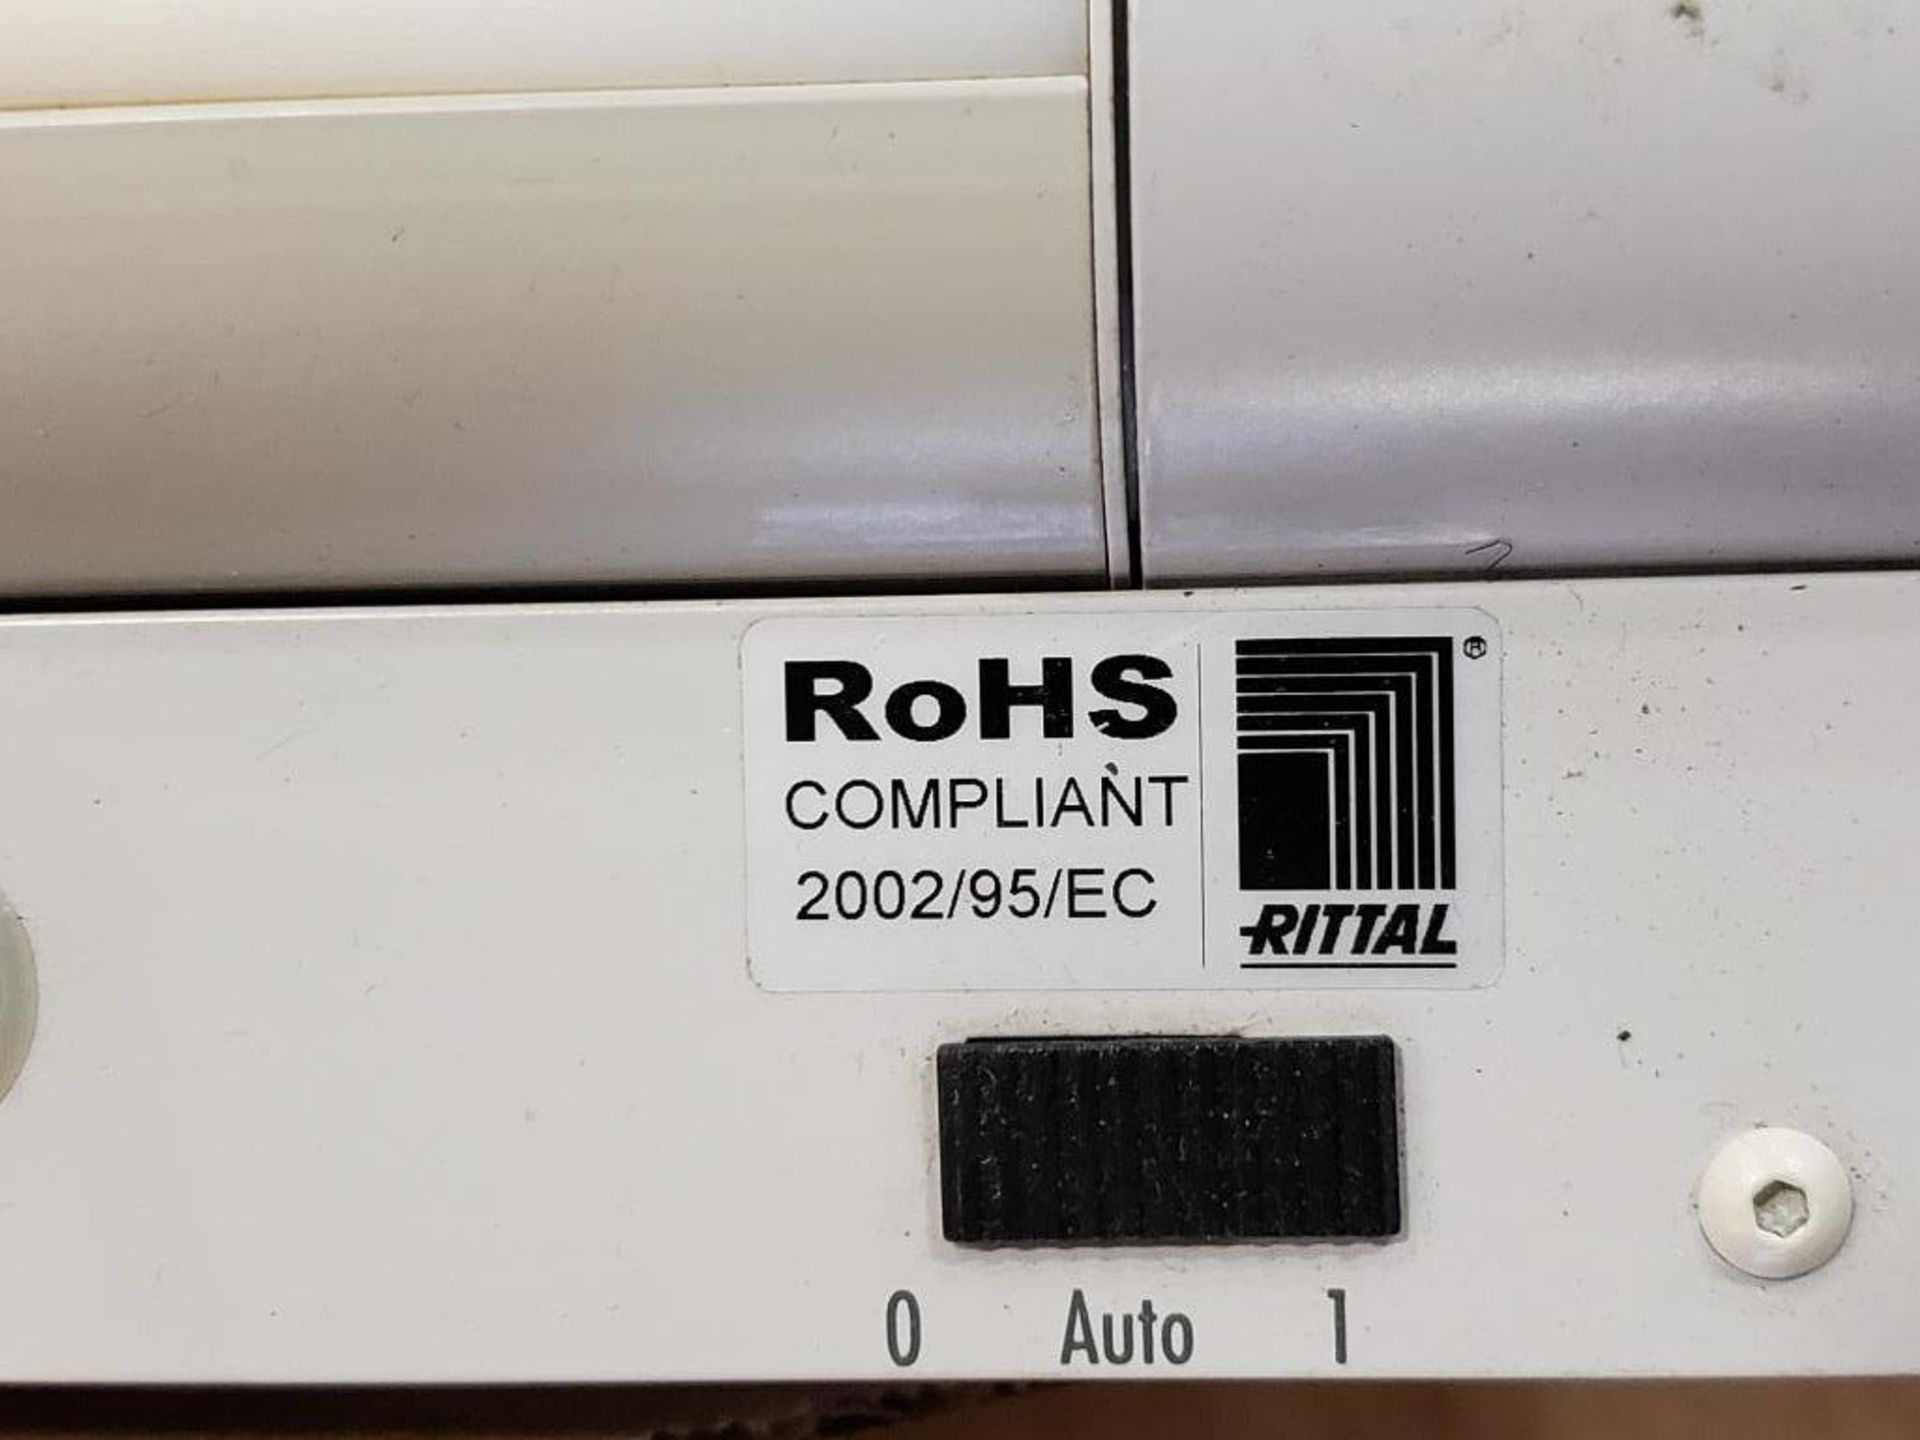 Rittal SZ-4155.500 Universal cabinet light with motion detector. Cord included. - Image 2 of 4